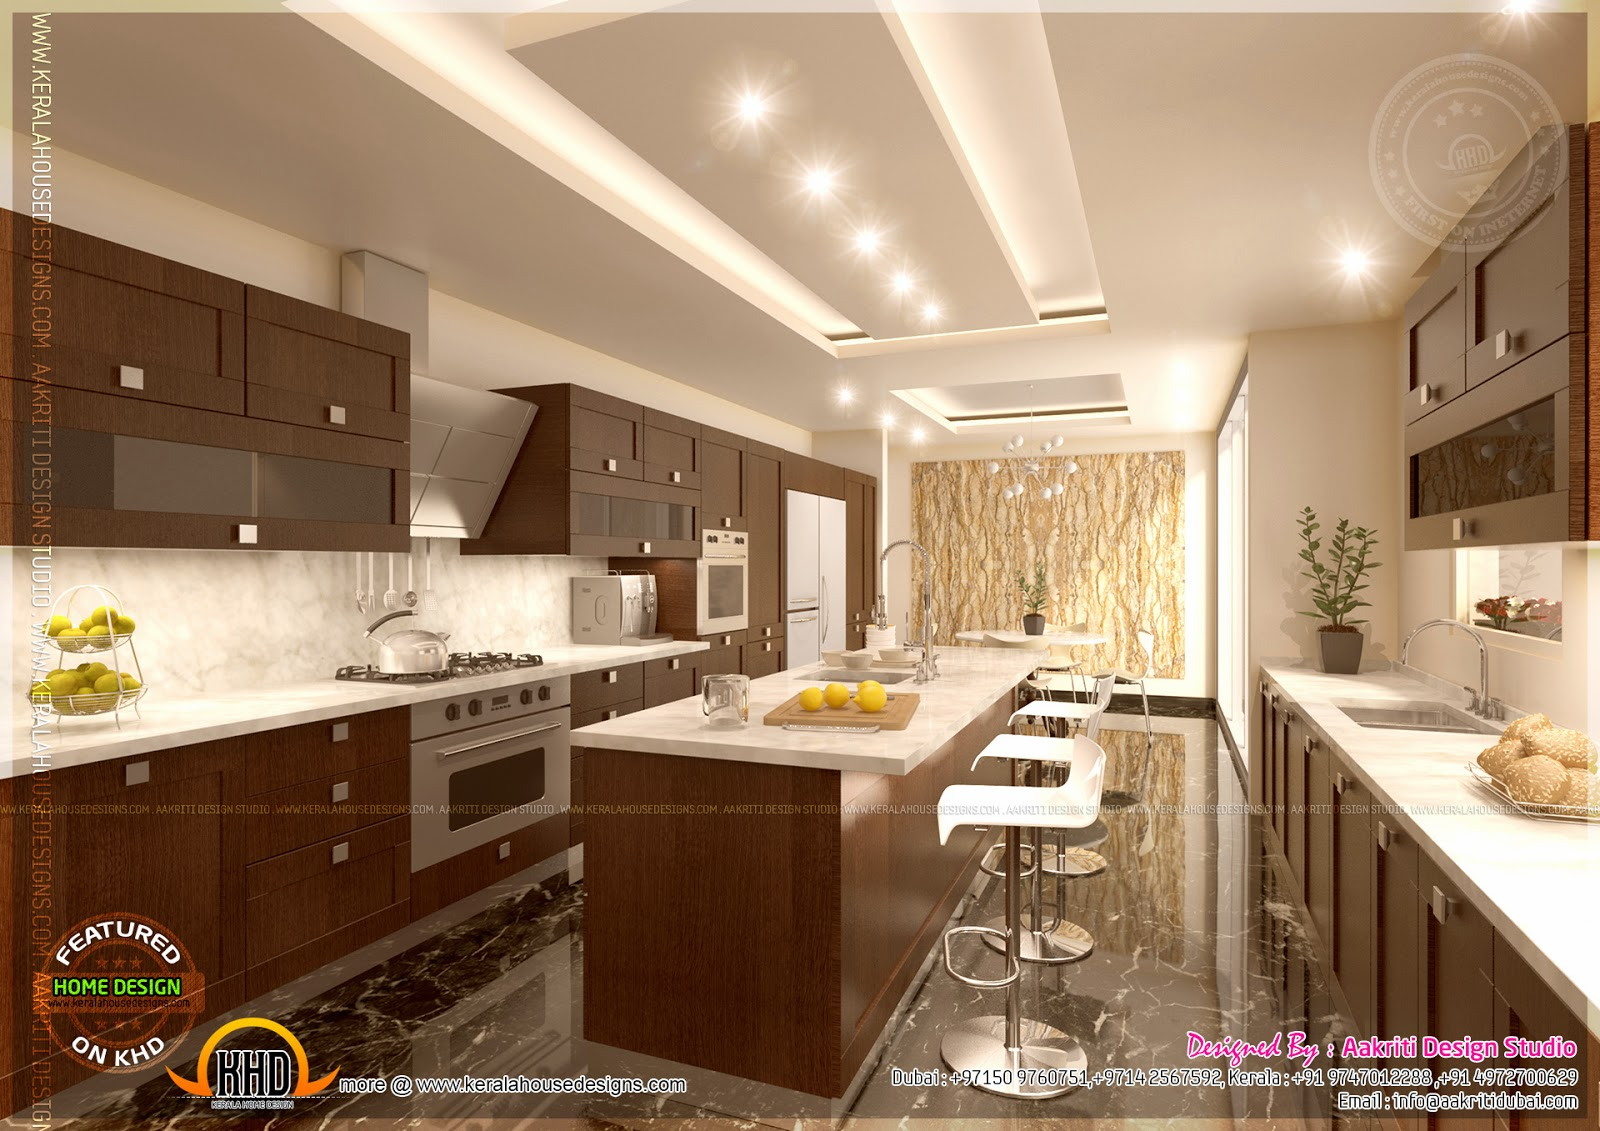 Kitchen designs by aakriti design studio kerala home for Kitchen design ideas pictures